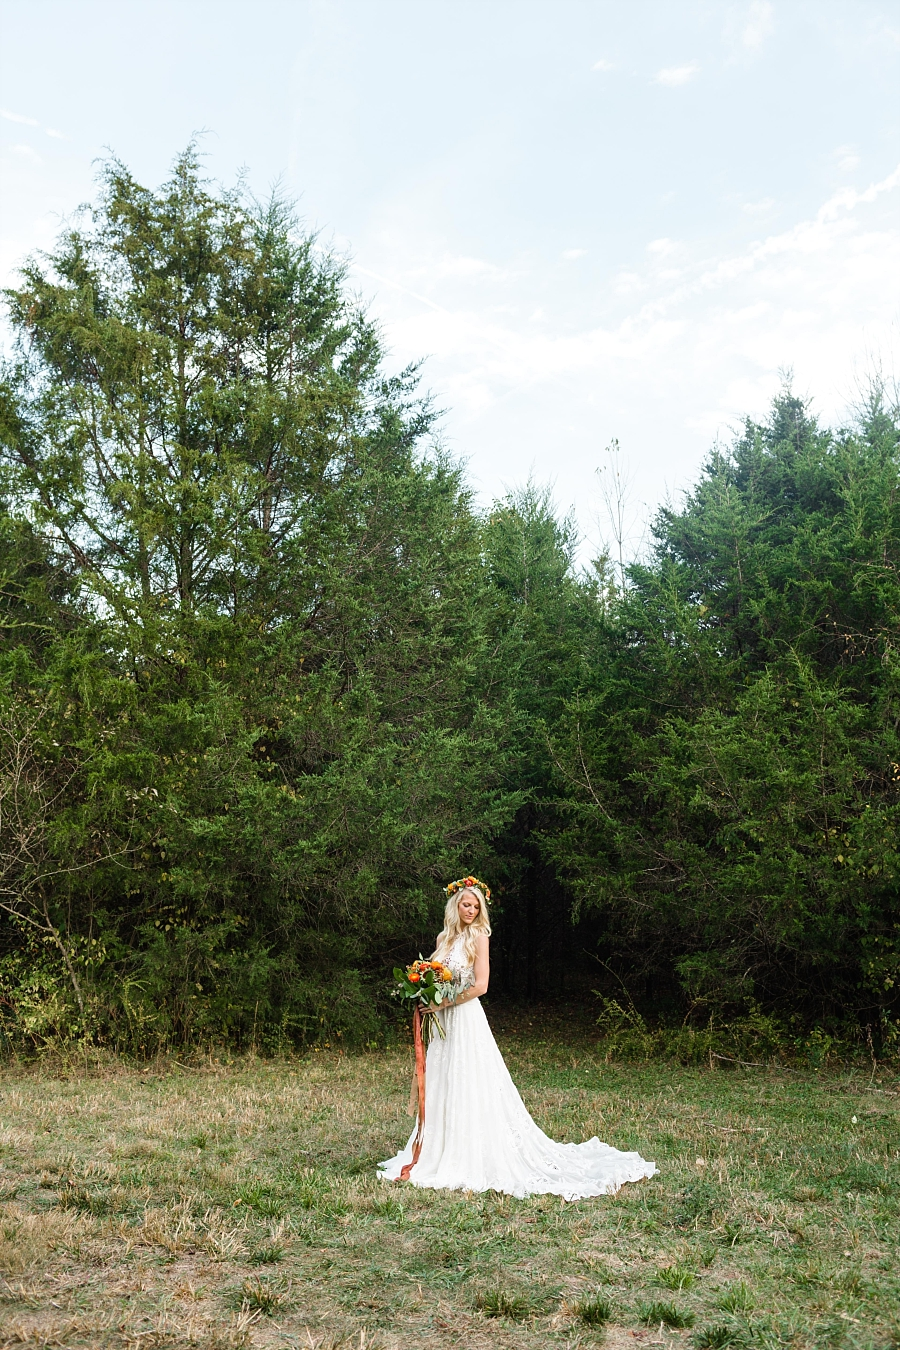 Stacy-Anderson-Photography-Cedarwood-Weddings-Nashville-Destination-Wedding-Photographer_0044.jpg